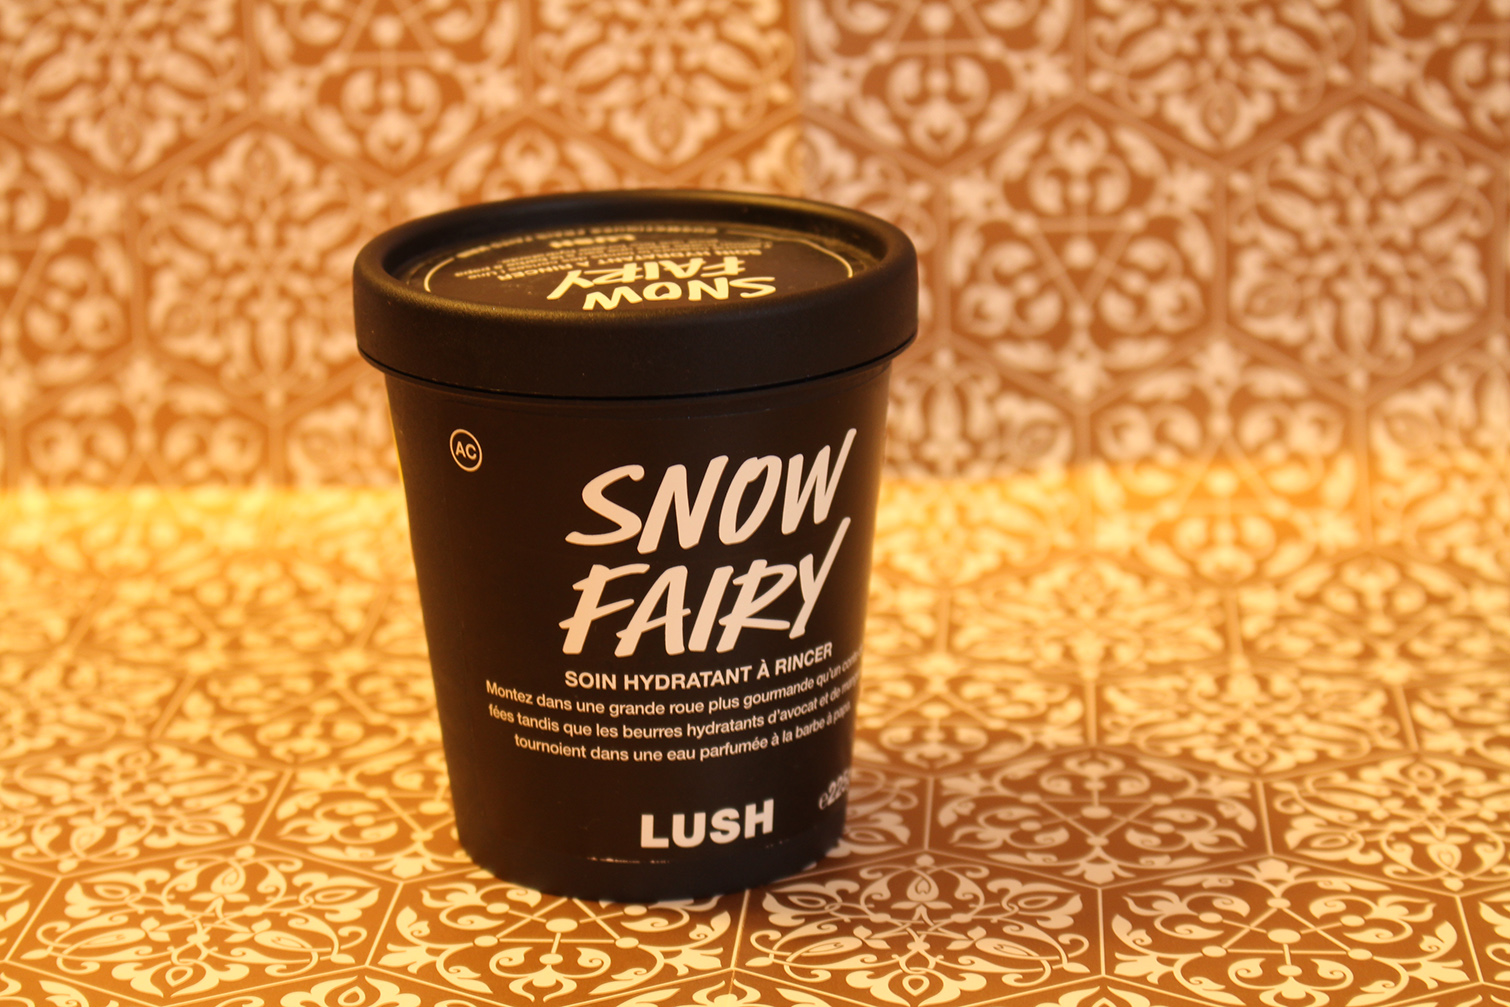 Snow Fairy, l'hydratant coprs bubble gum